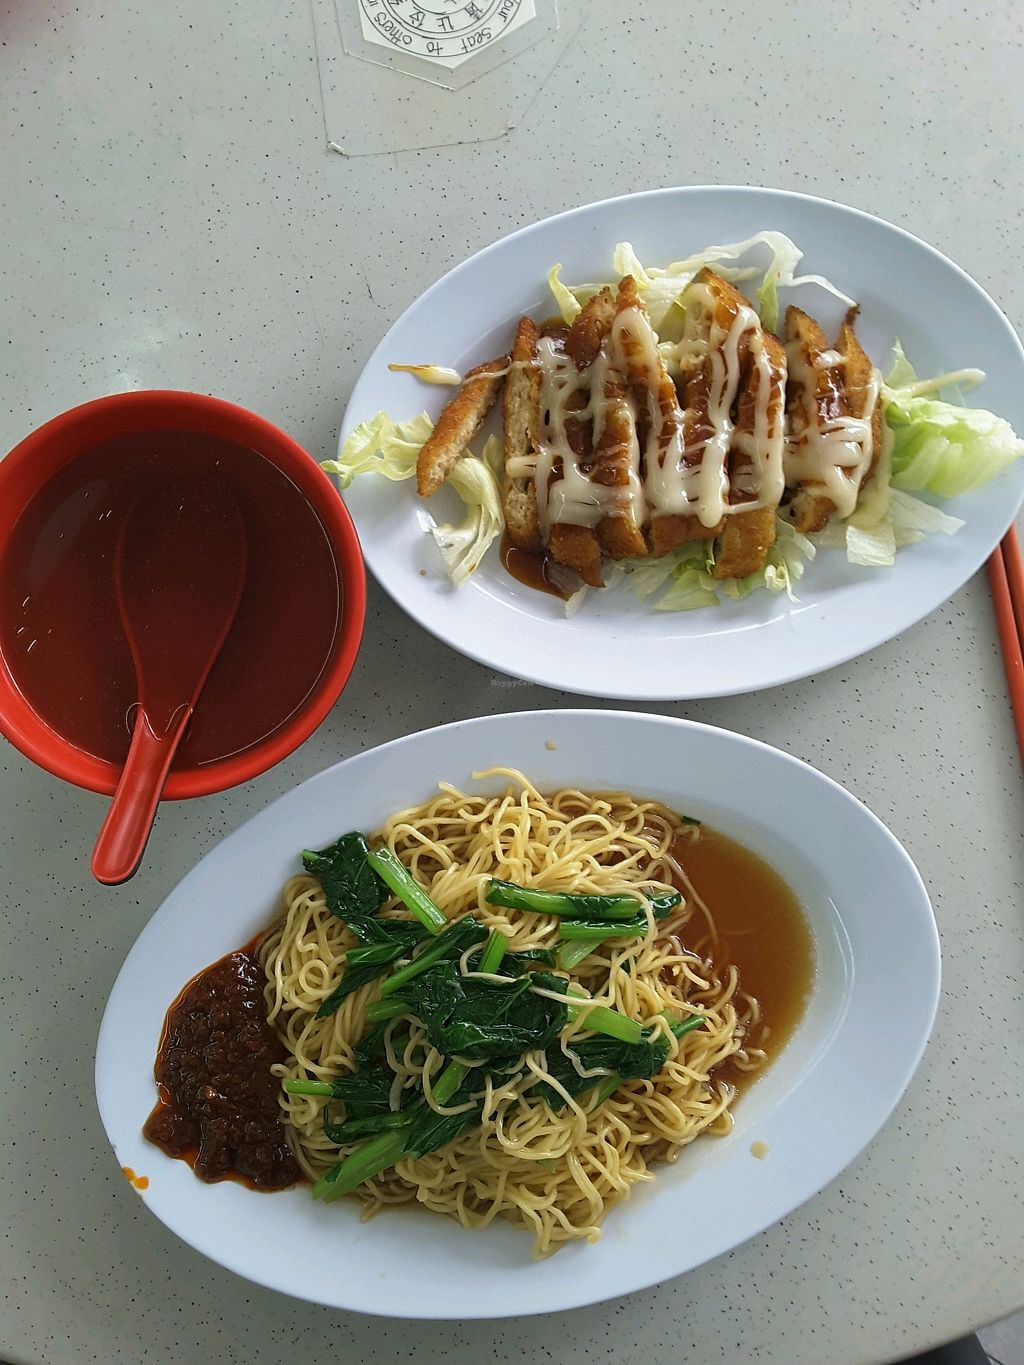 """Photo of He Xi Vegetarian  by <a href=""""/members/profile/Allan3847"""">Allan3847</a> <br/>Veg Chicken Cutlet Noodle 香炸鸡扒面 <br/> December 12, 2017  - <a href='/contact/abuse/image/56877/334845'>Report</a>"""